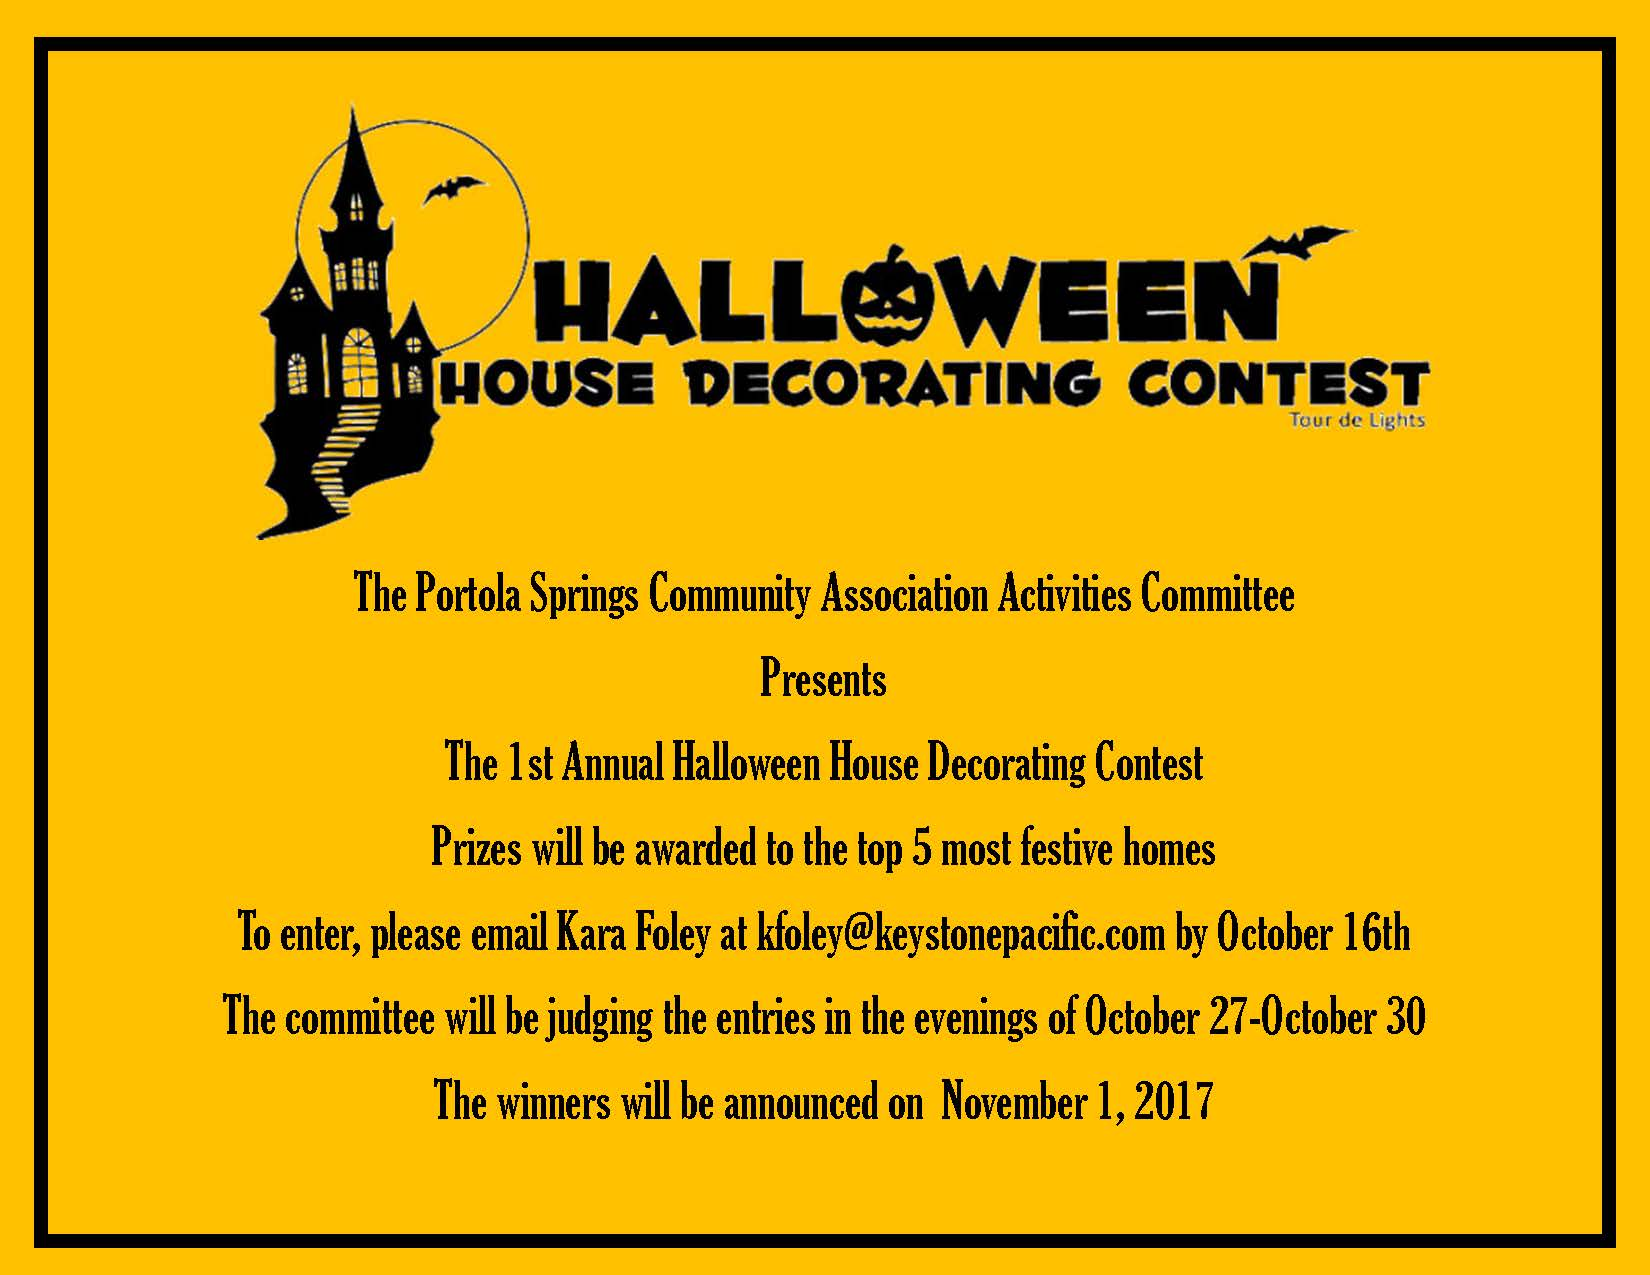 Haunted House Decorating Contest Flyer